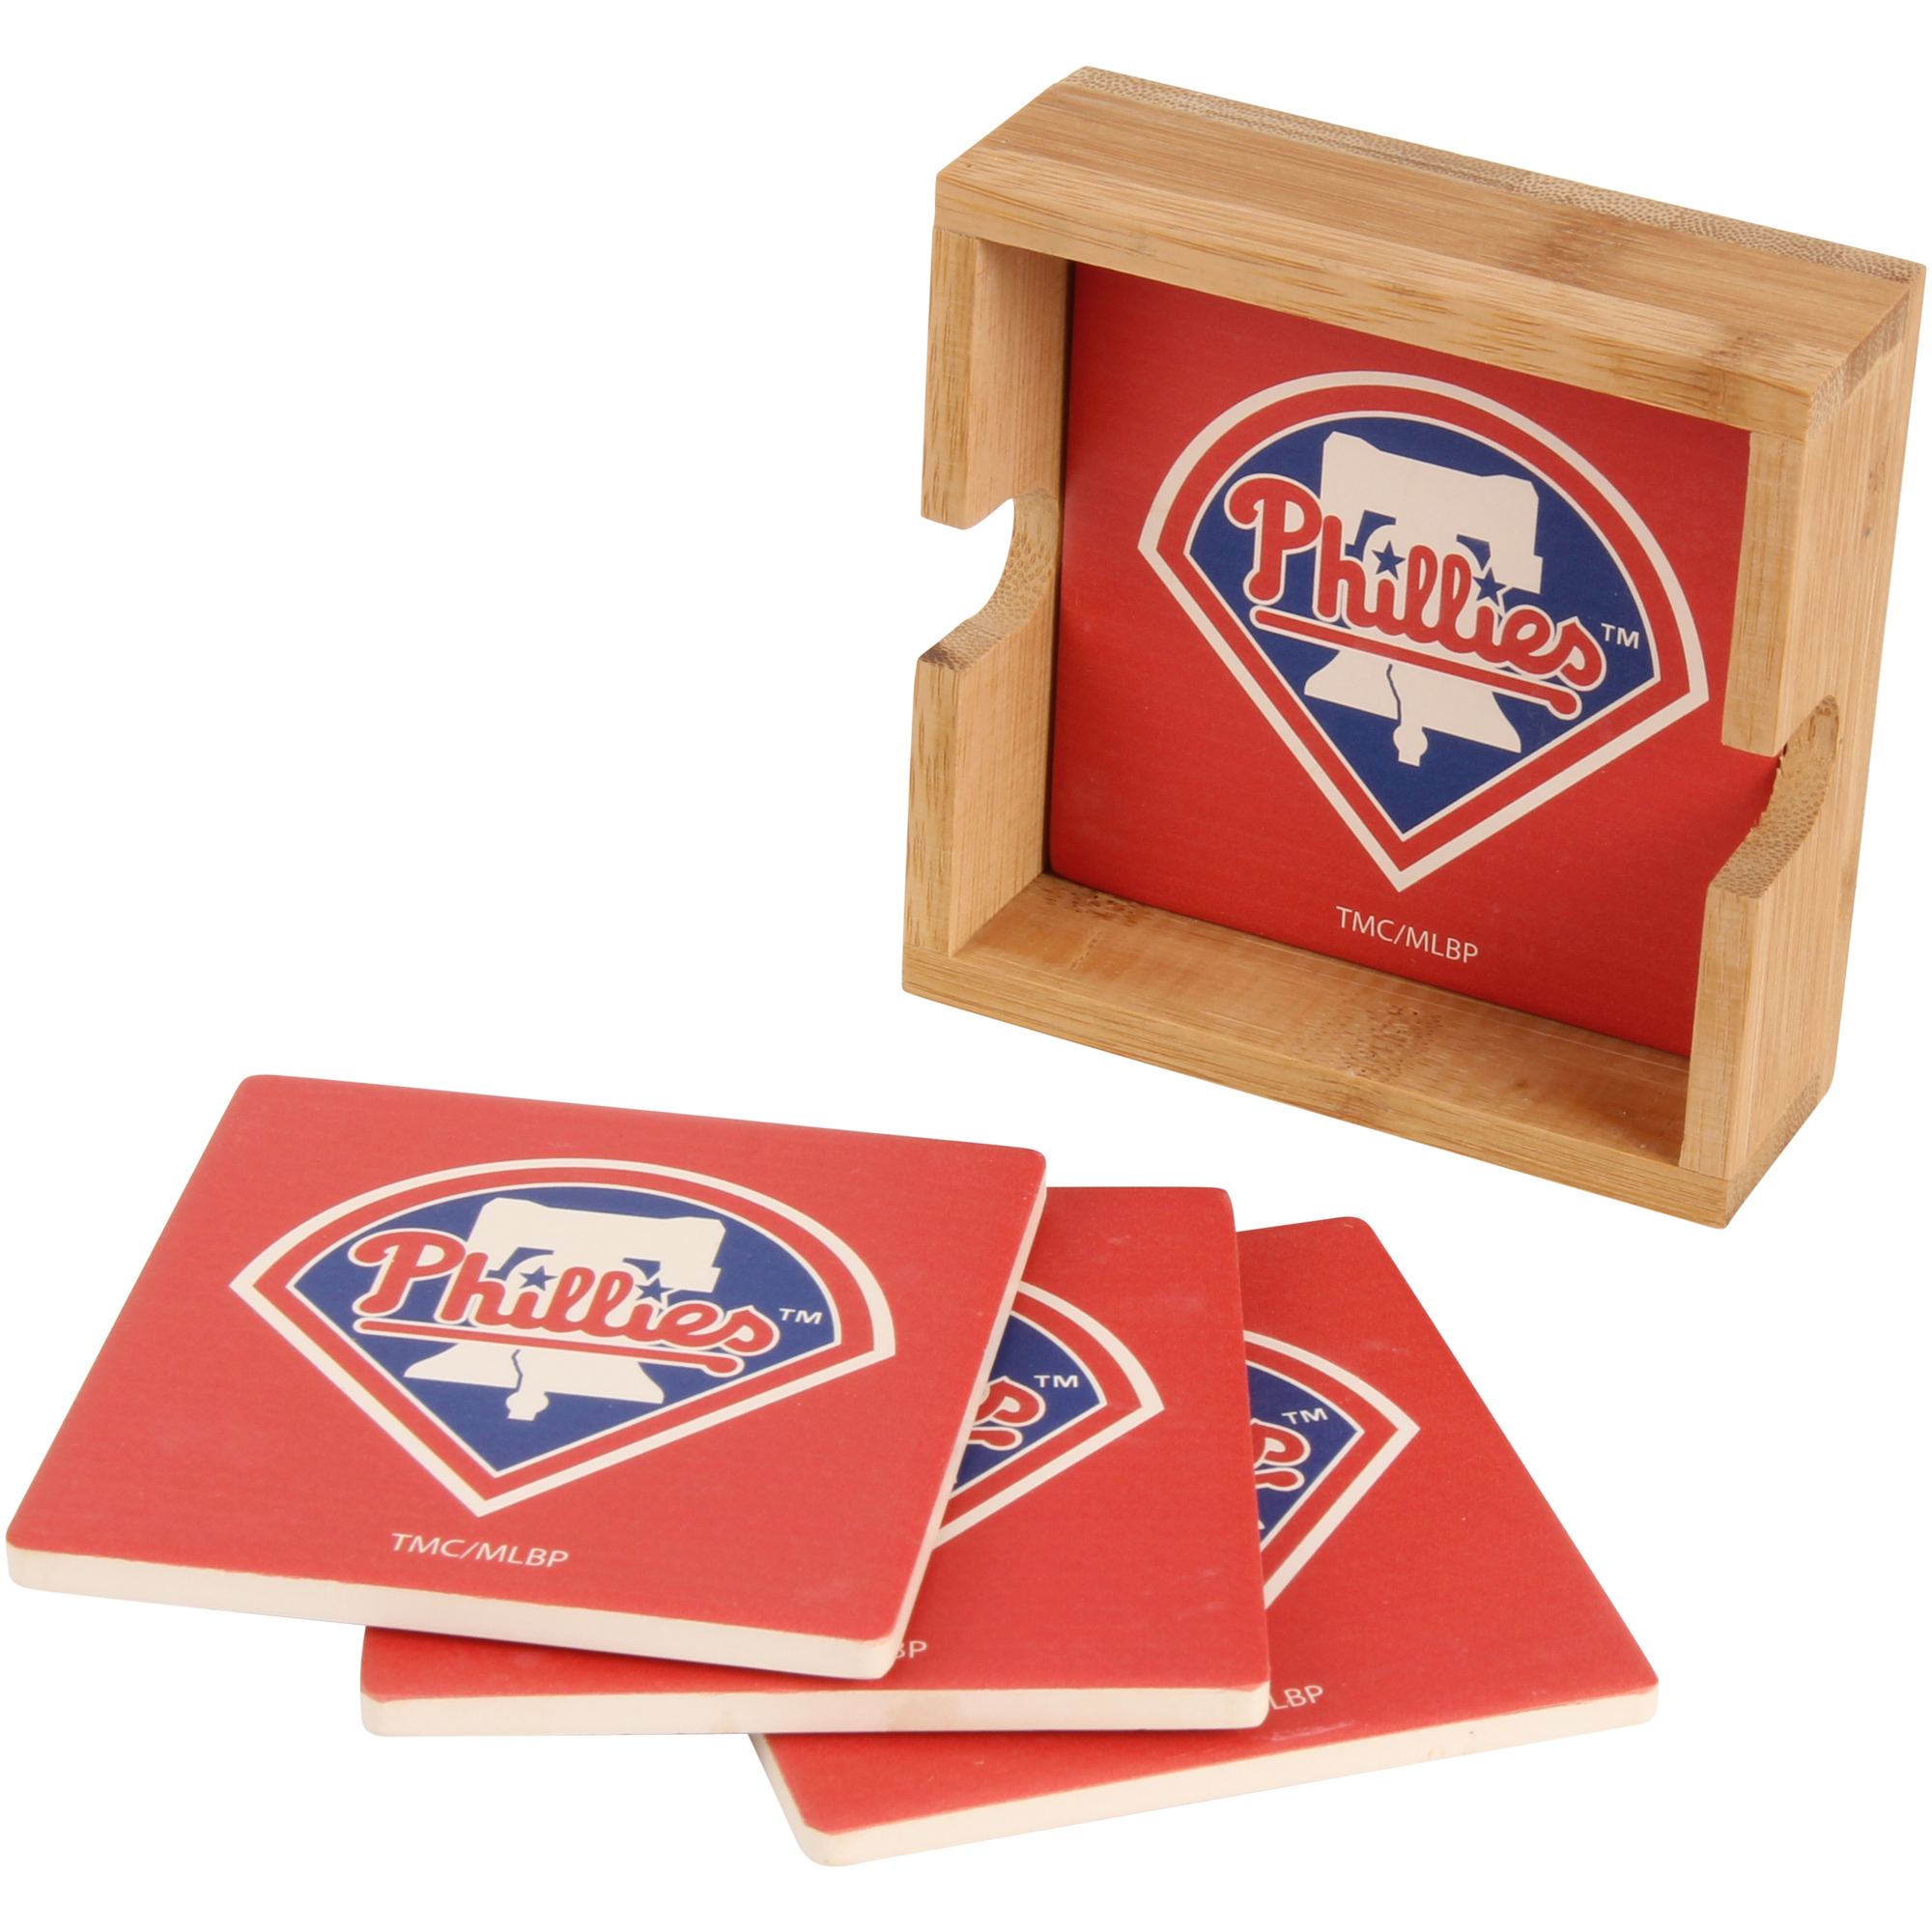 Philadelphia Phillies 4-Pack Square Coaster Set with Caddy - No Size